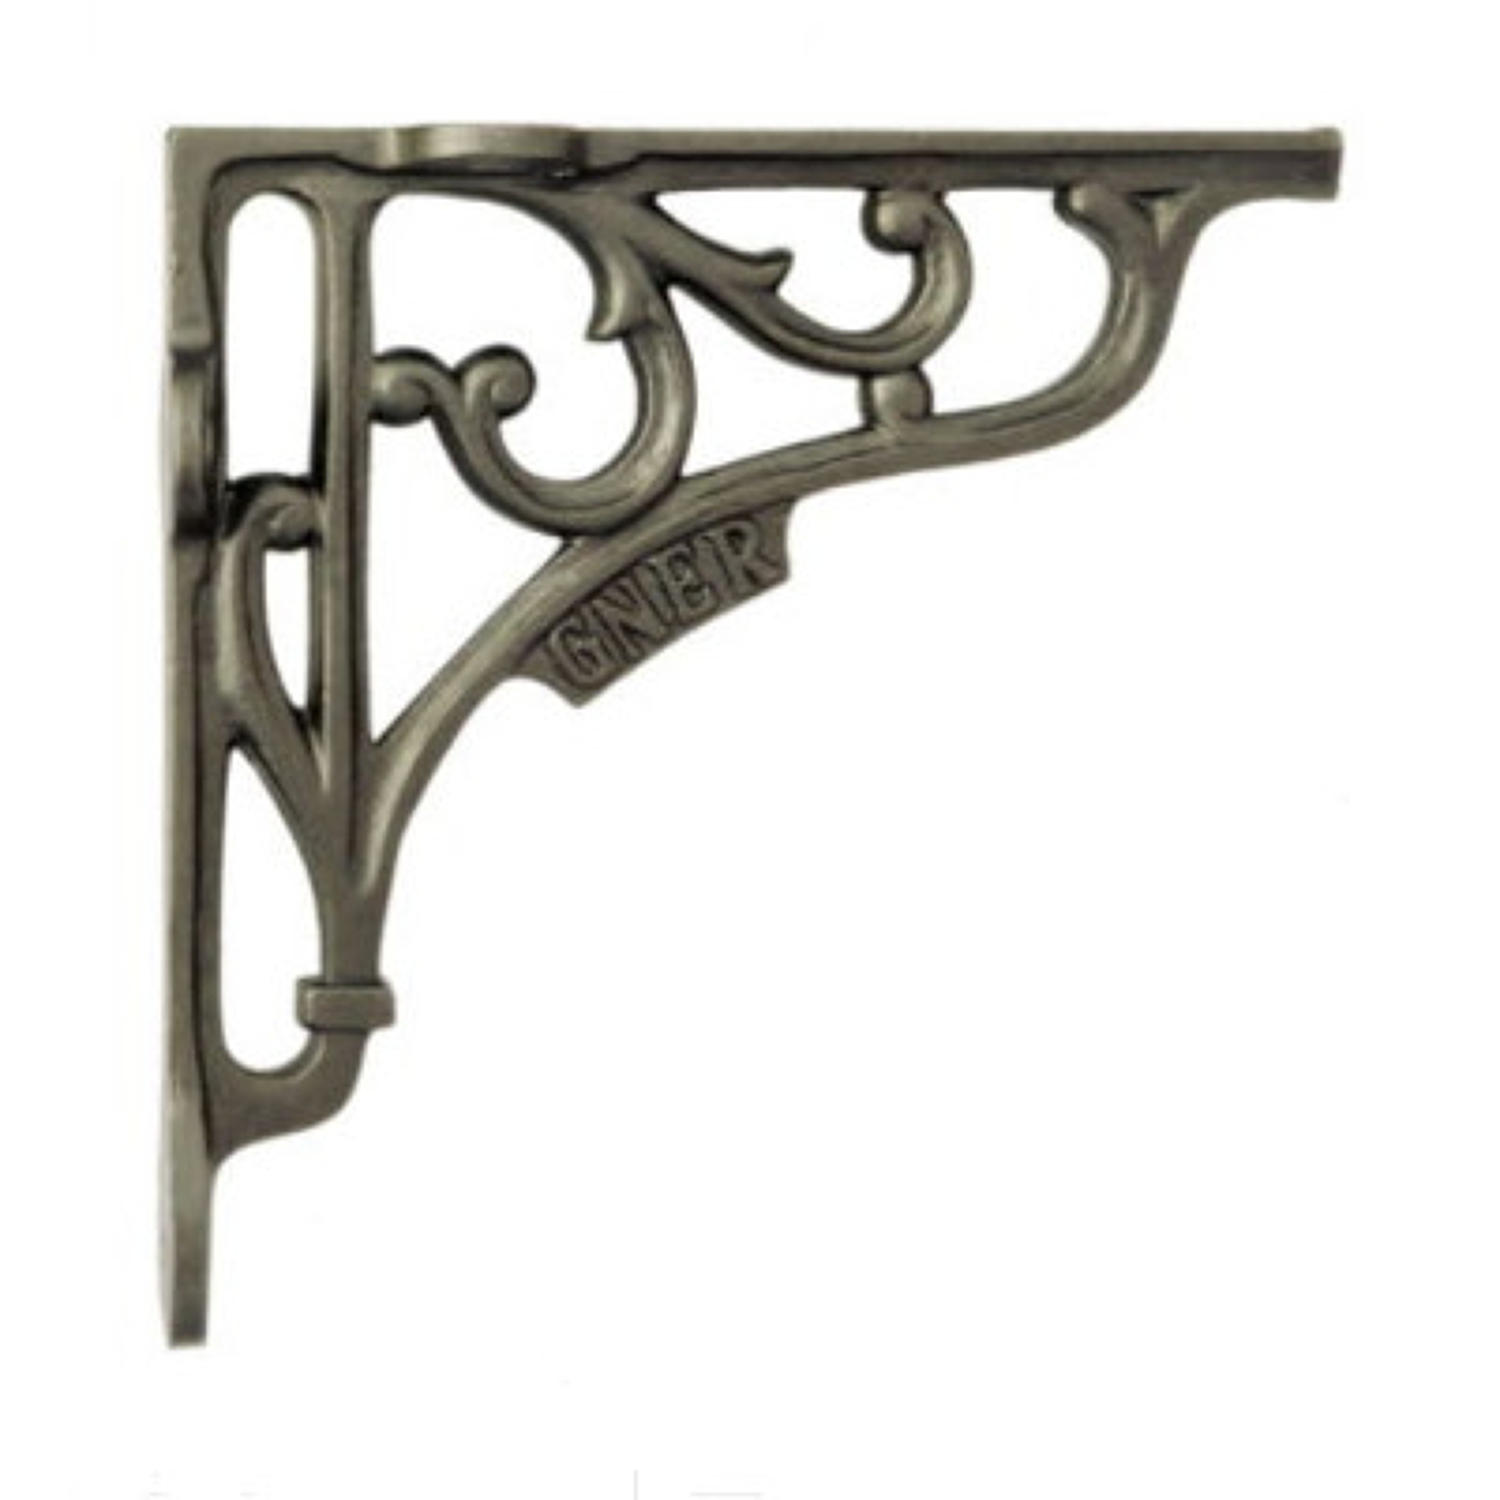 Small Cast Iron Railway Shelf Bracket